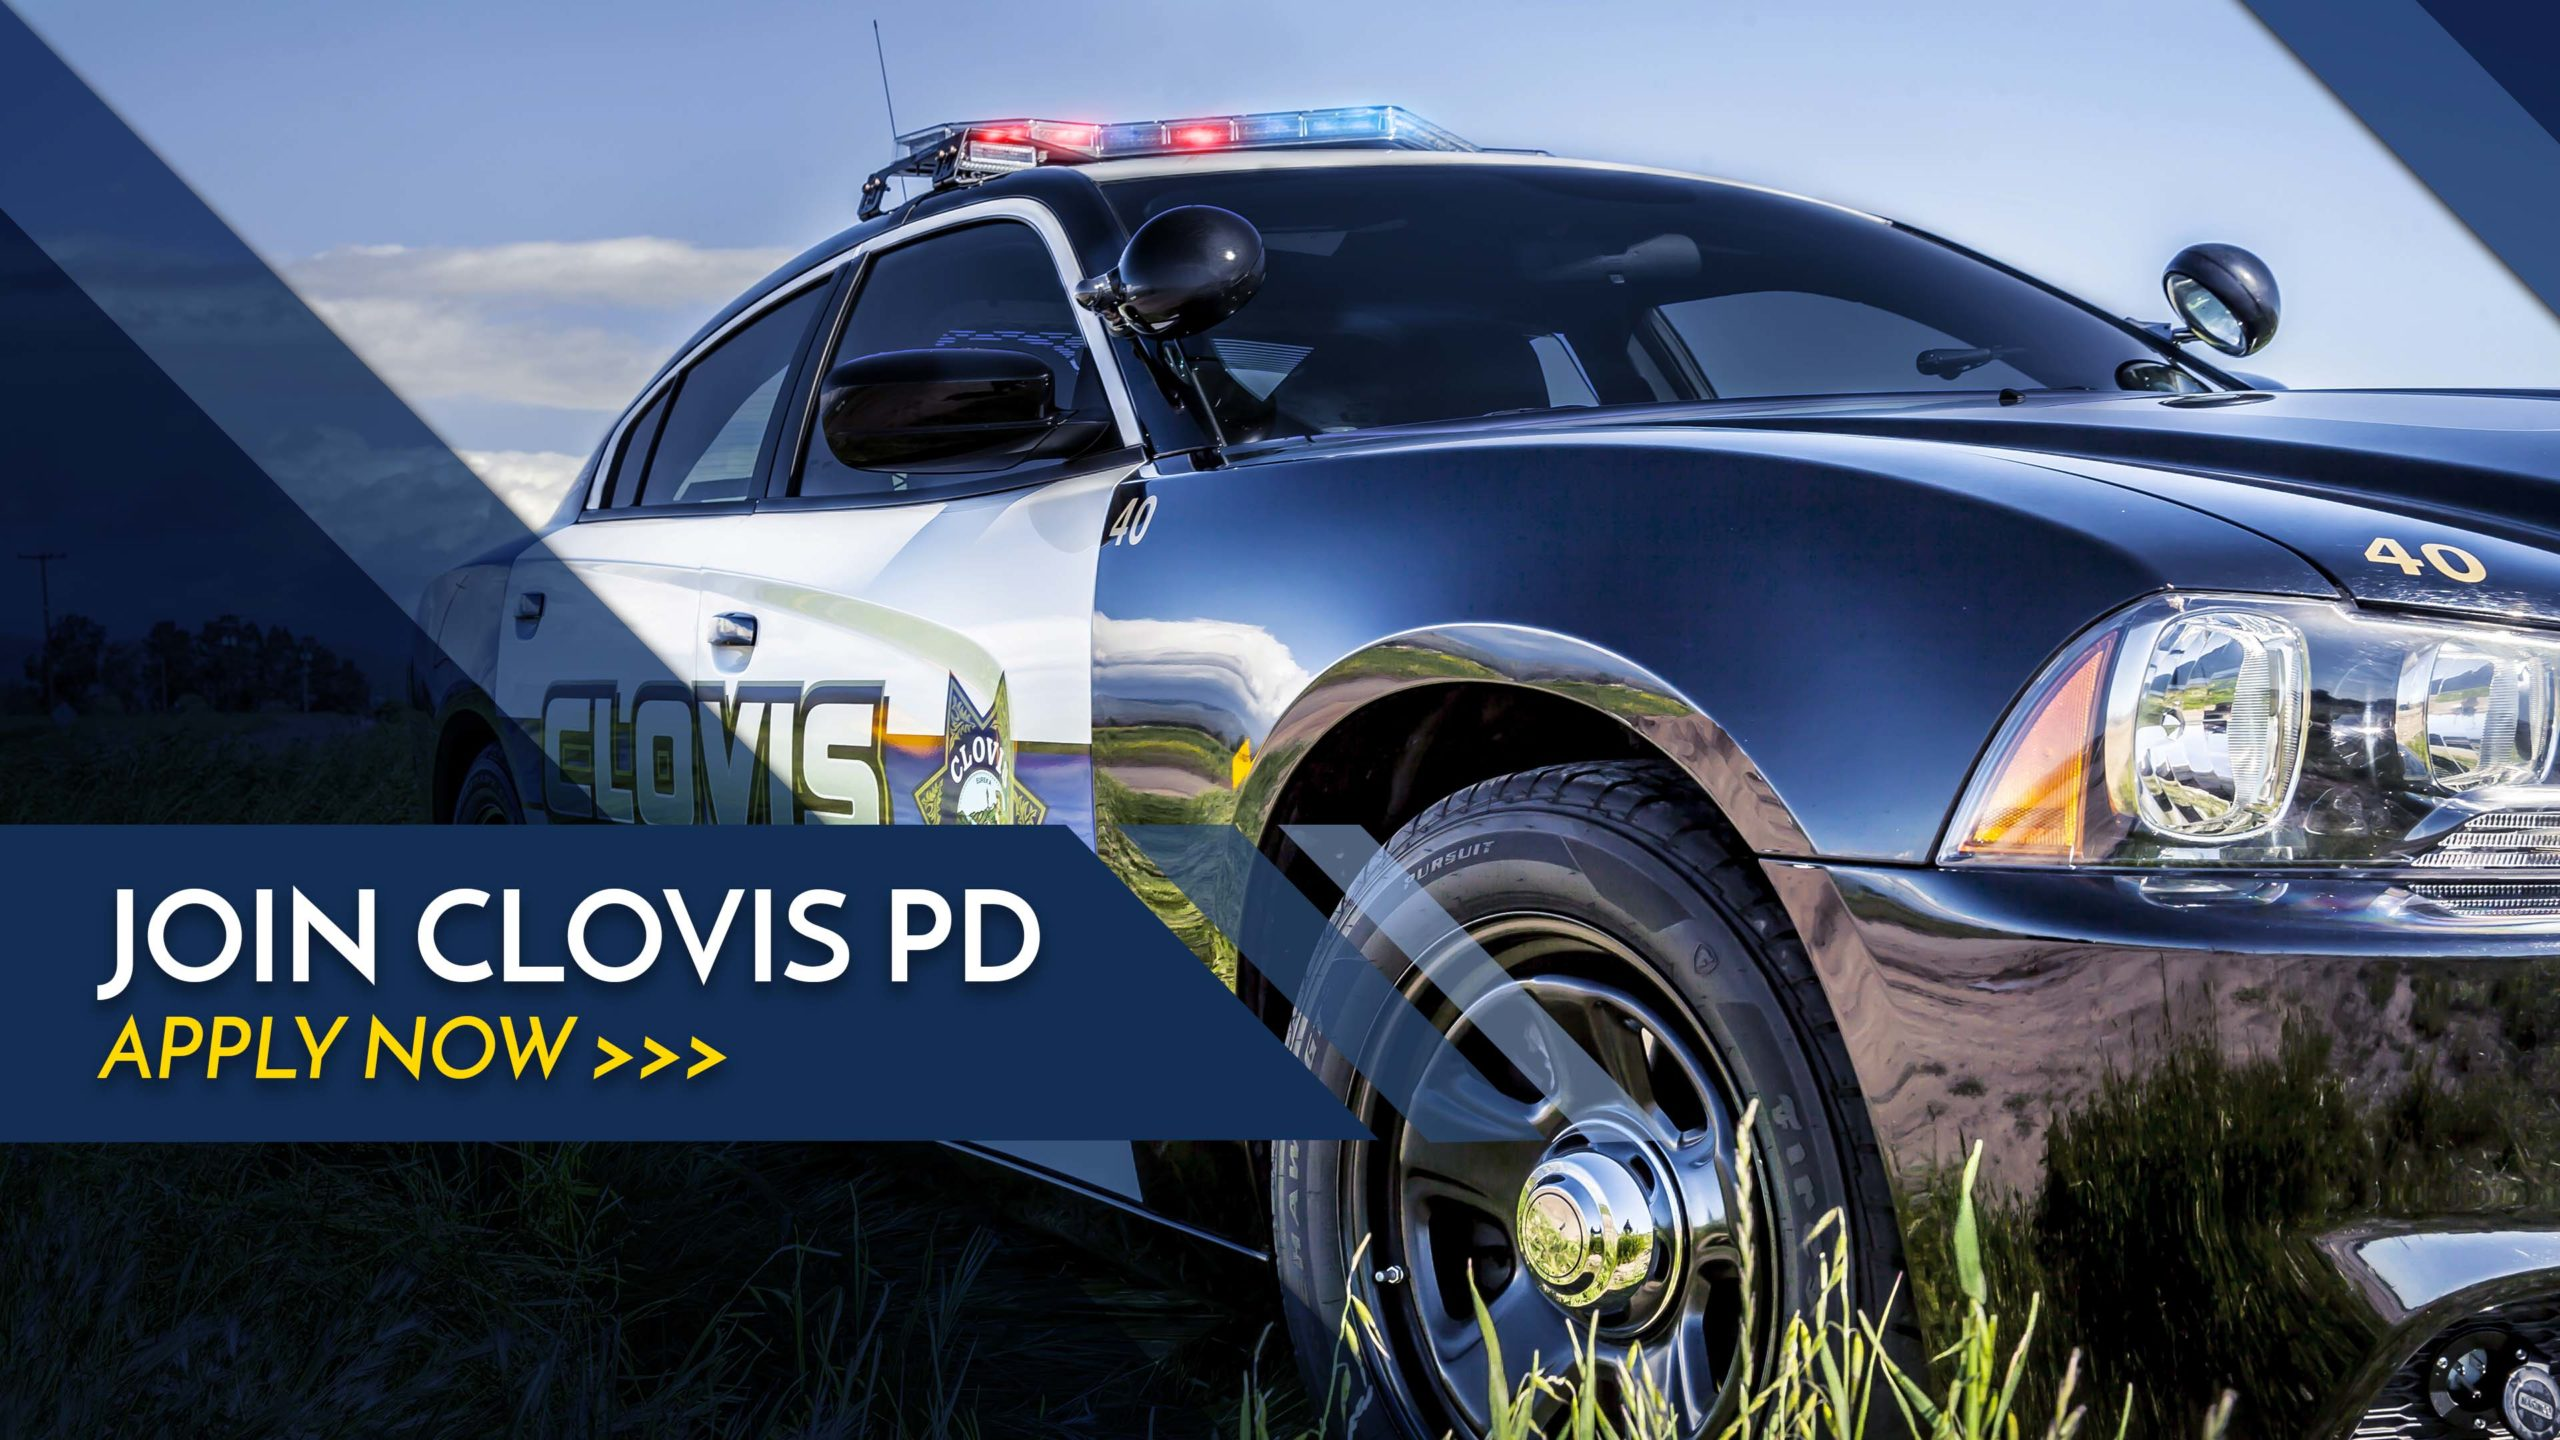 An image of a Clovis police car